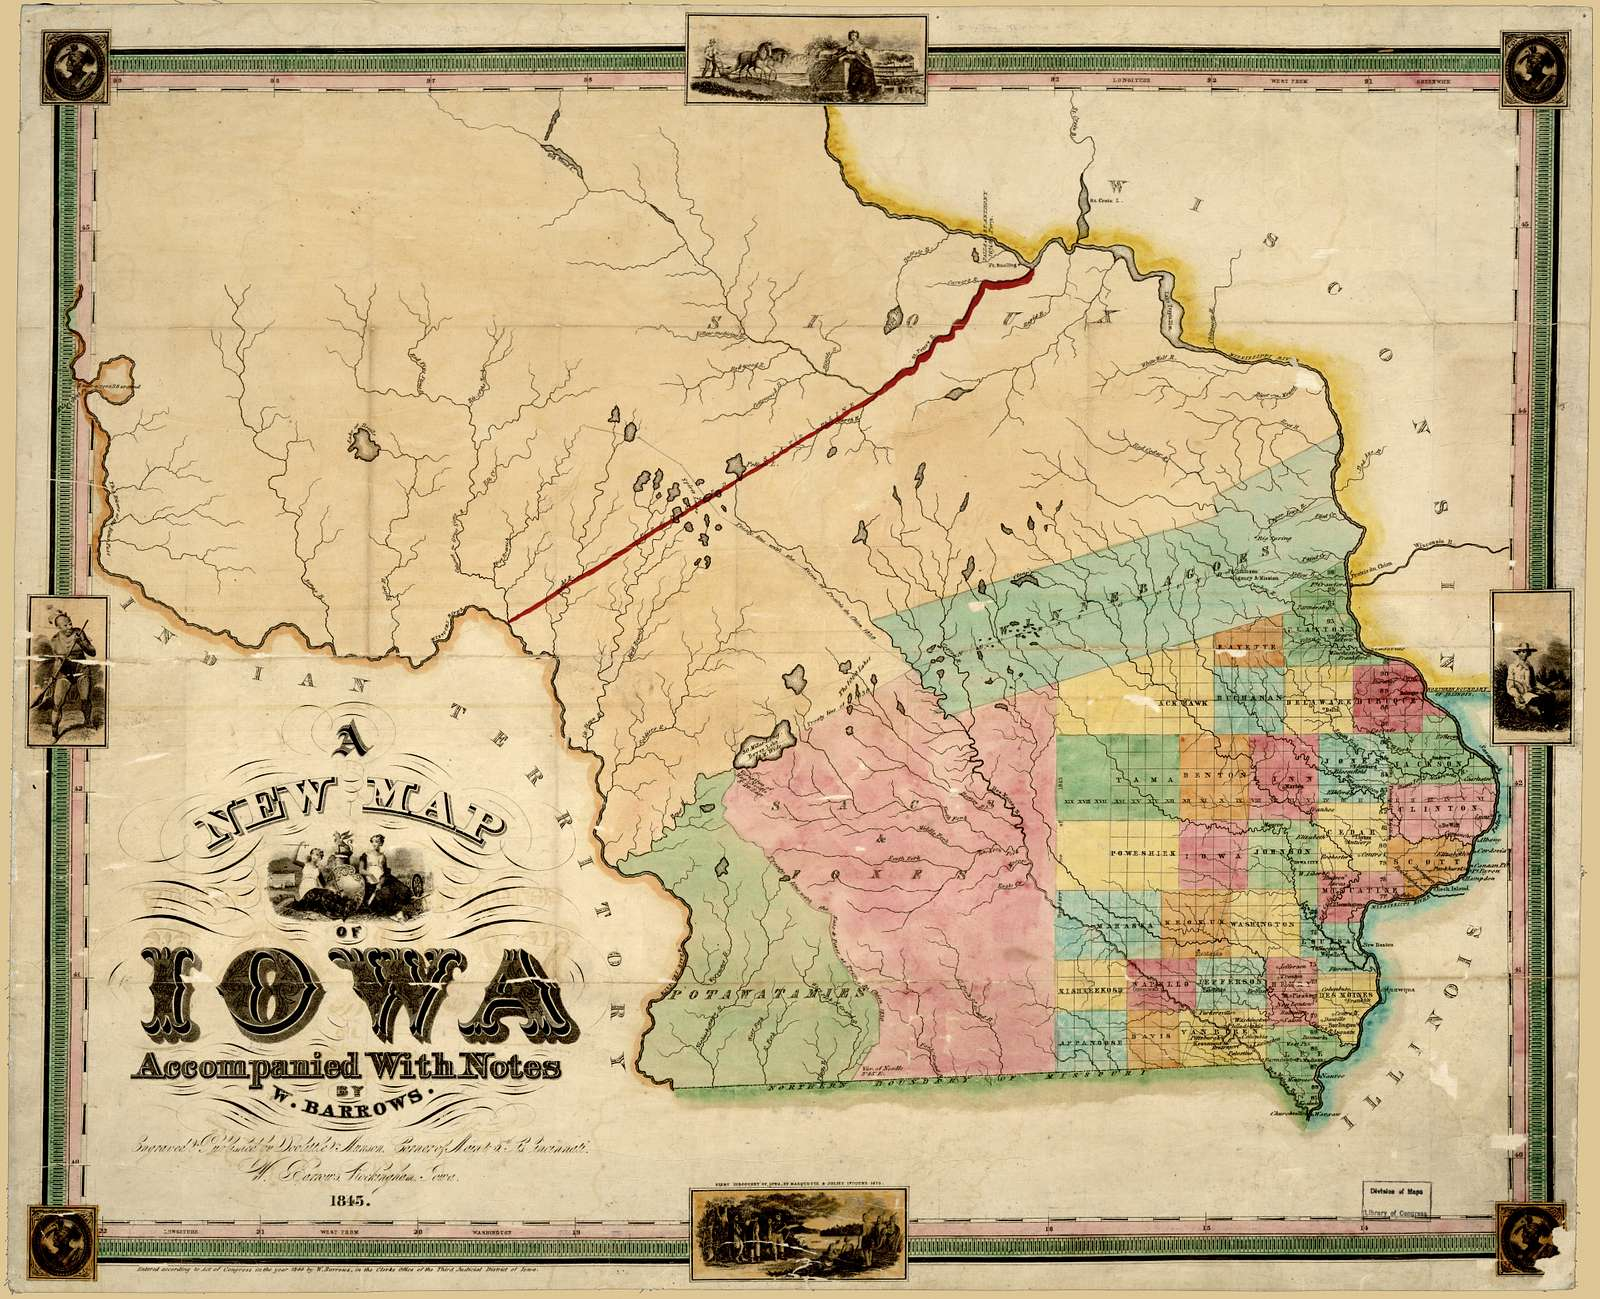 A new map of Iowa : accompanied with notes by W. Barrows /